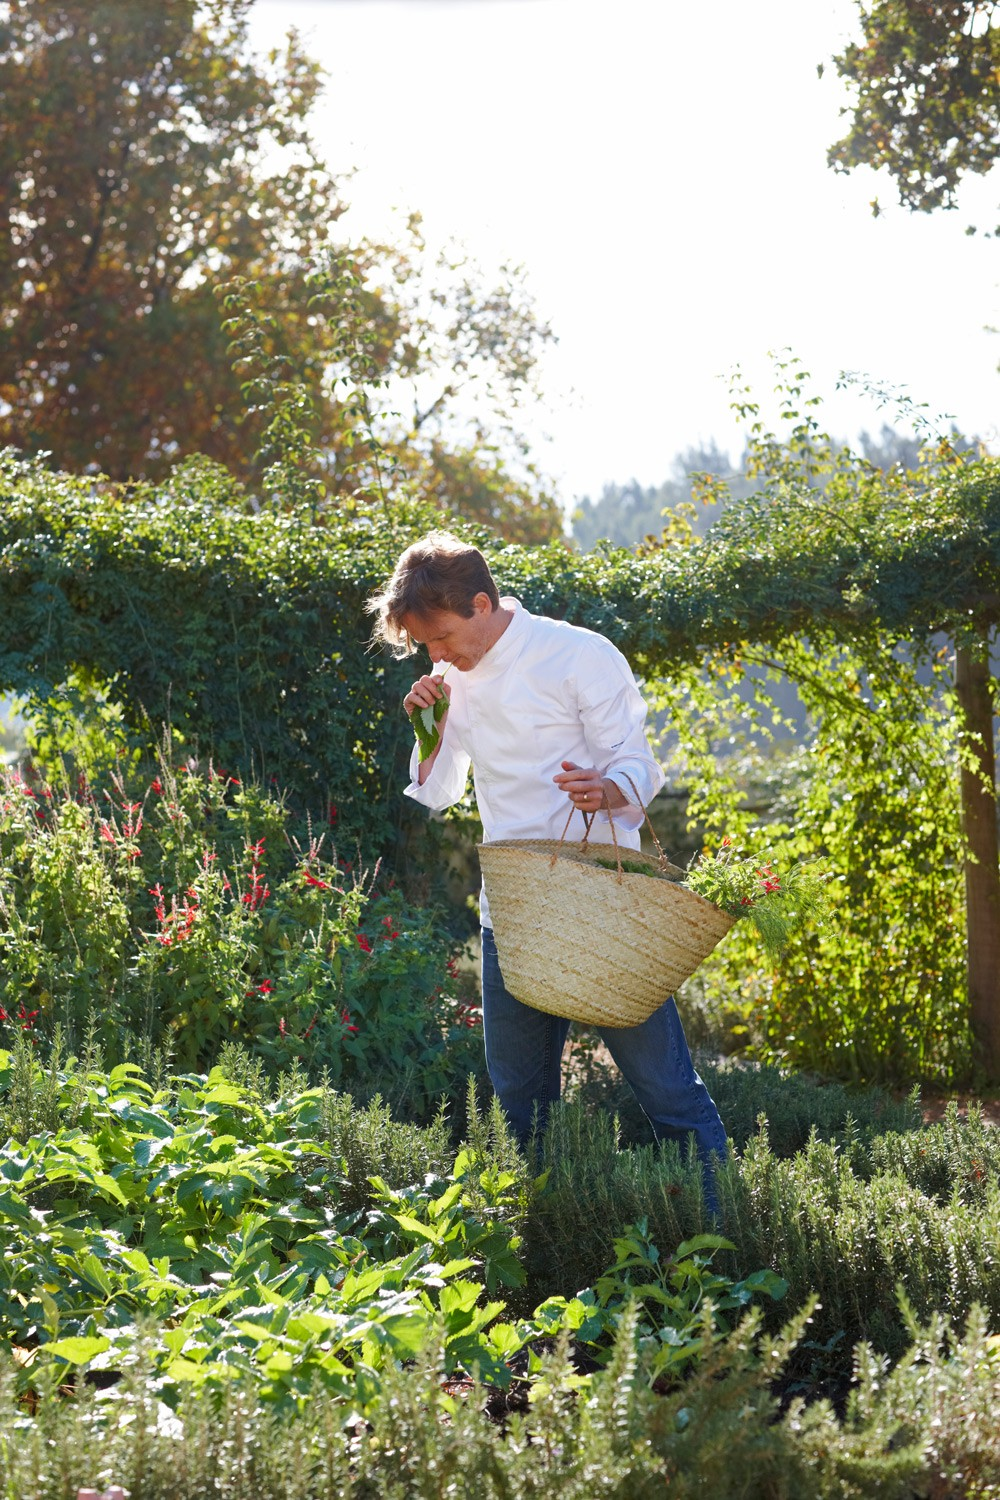 choosing-fresh-ingredients-from-the-garden-christiaan-campbell